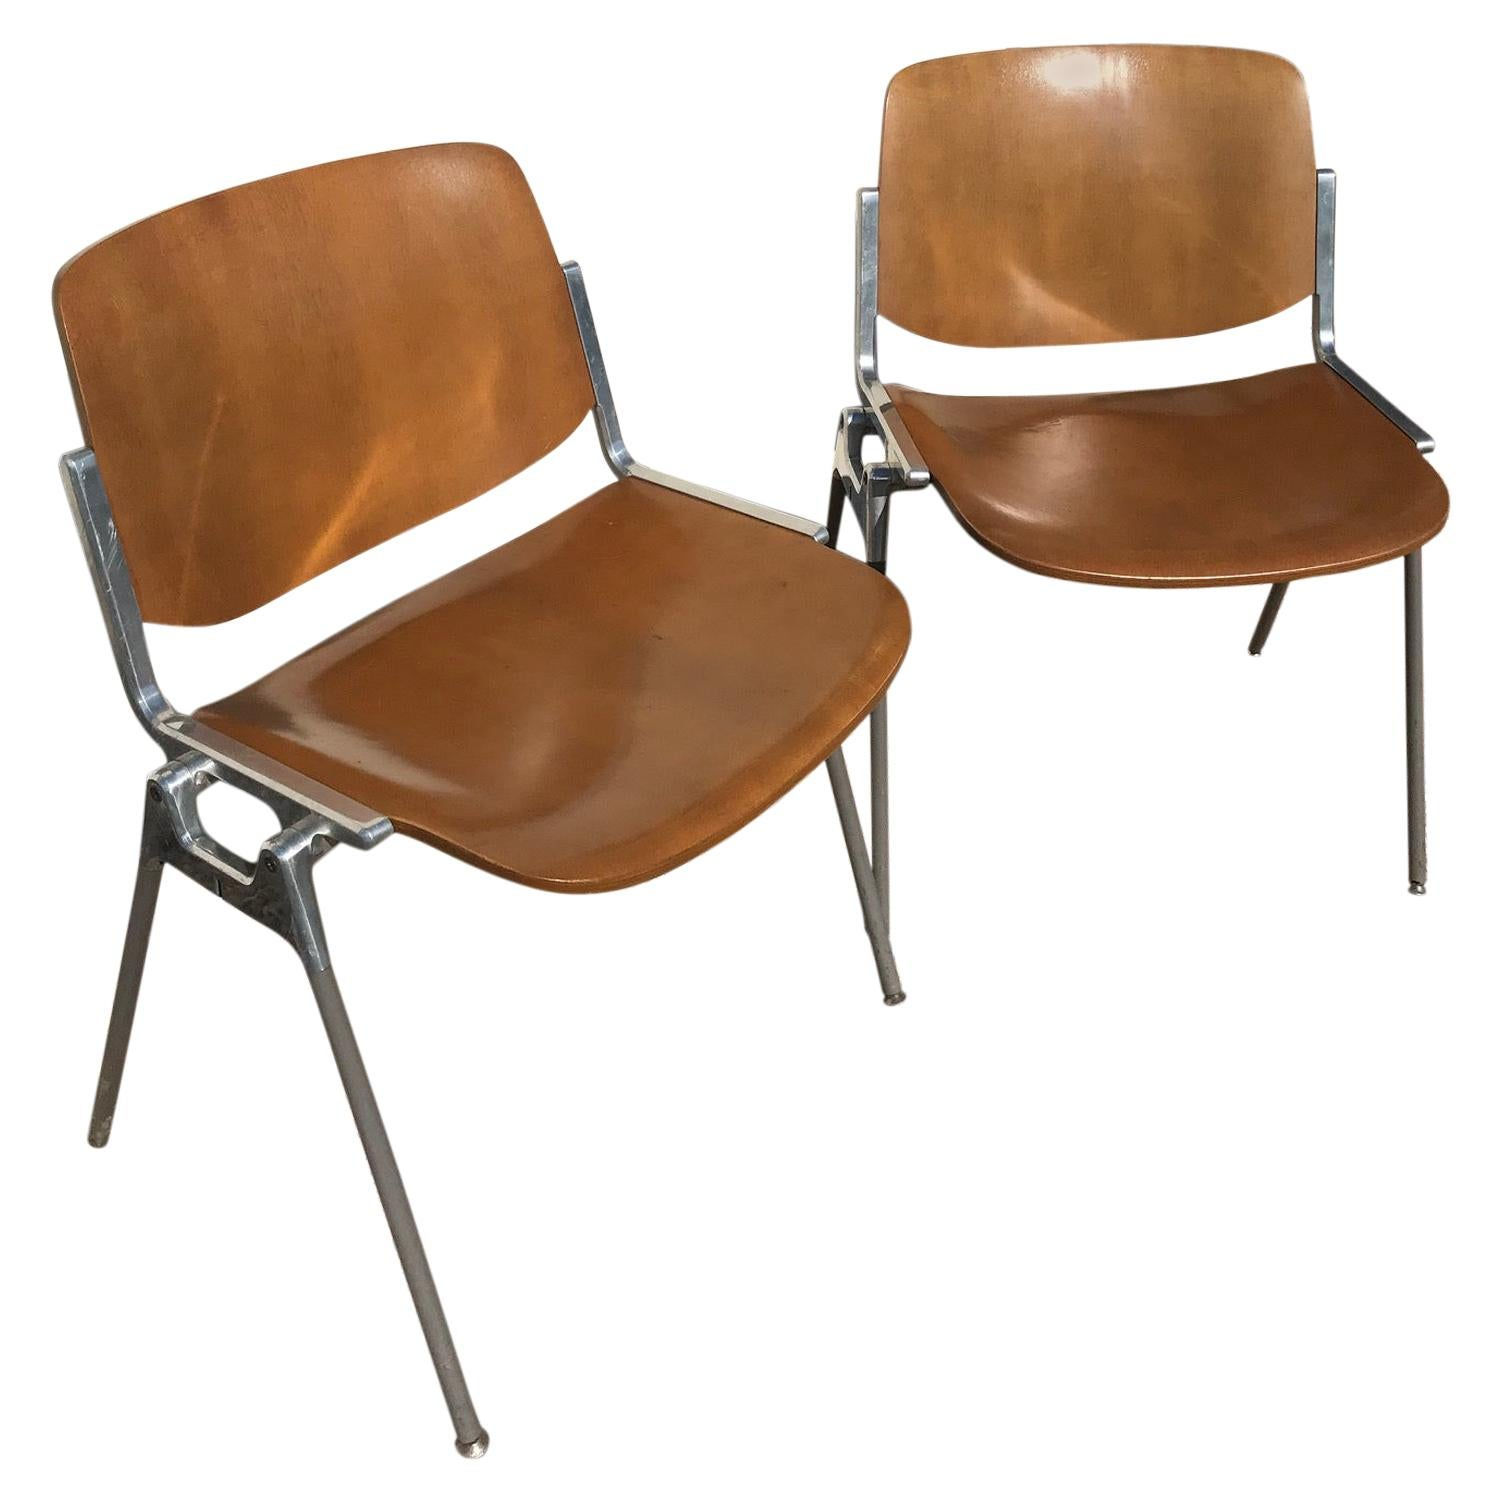 Pair of Modern Giancarlo Piretti DSC 106 Conference Chairs, 1970s